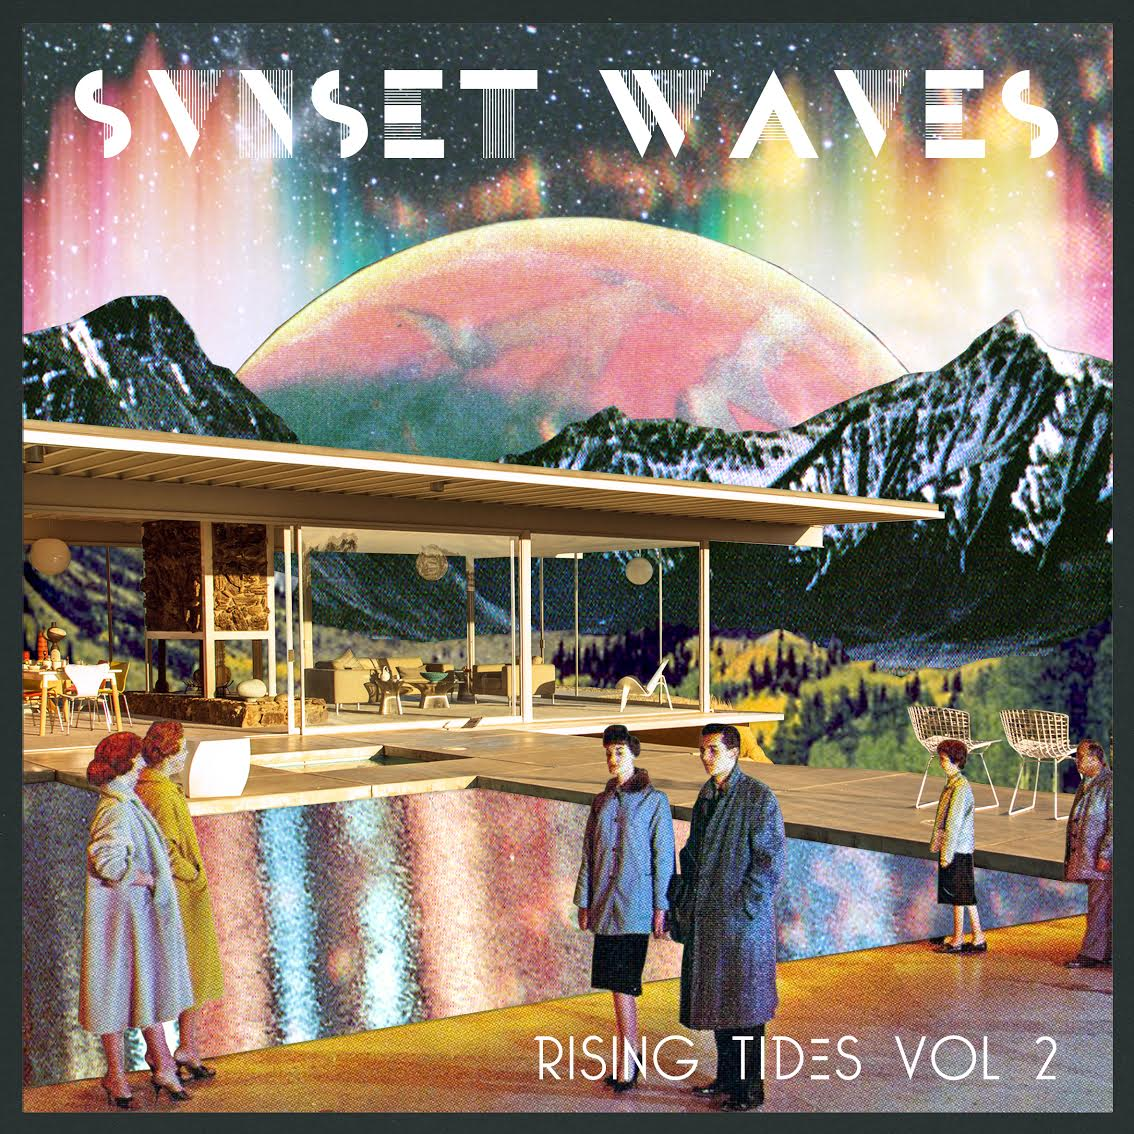 RISING TIDES vol. 2  /  Compilation  / October 24, 2014